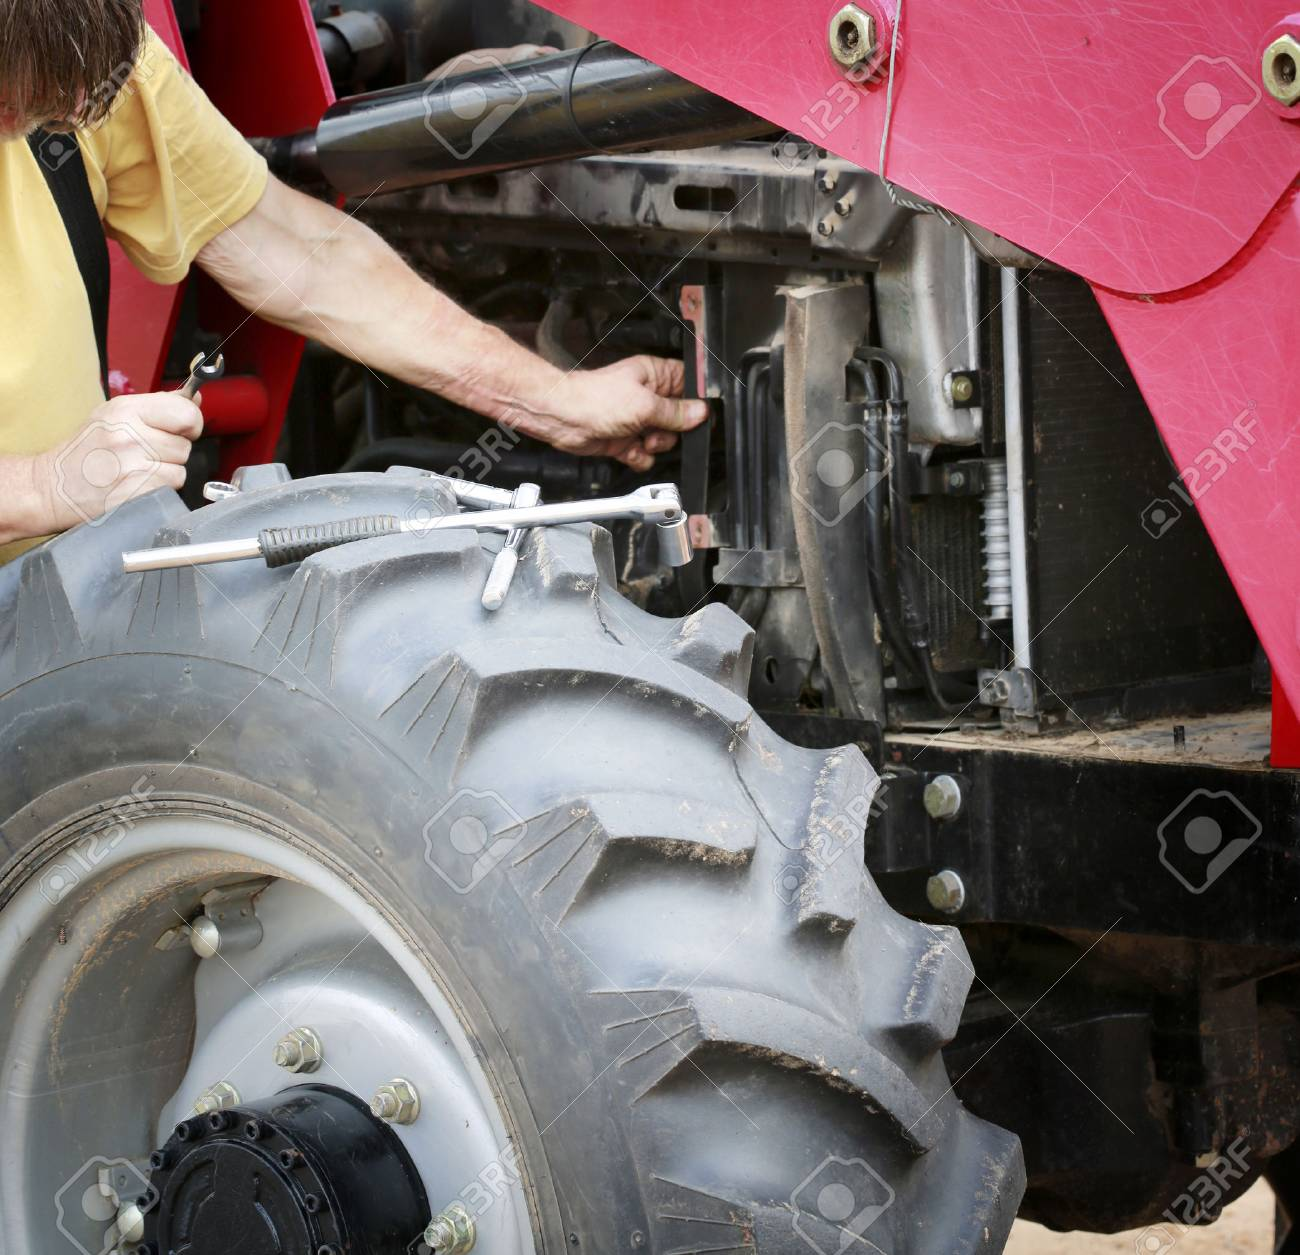 Man repairs large red tractor with focus on tools and front wheel - 78711435